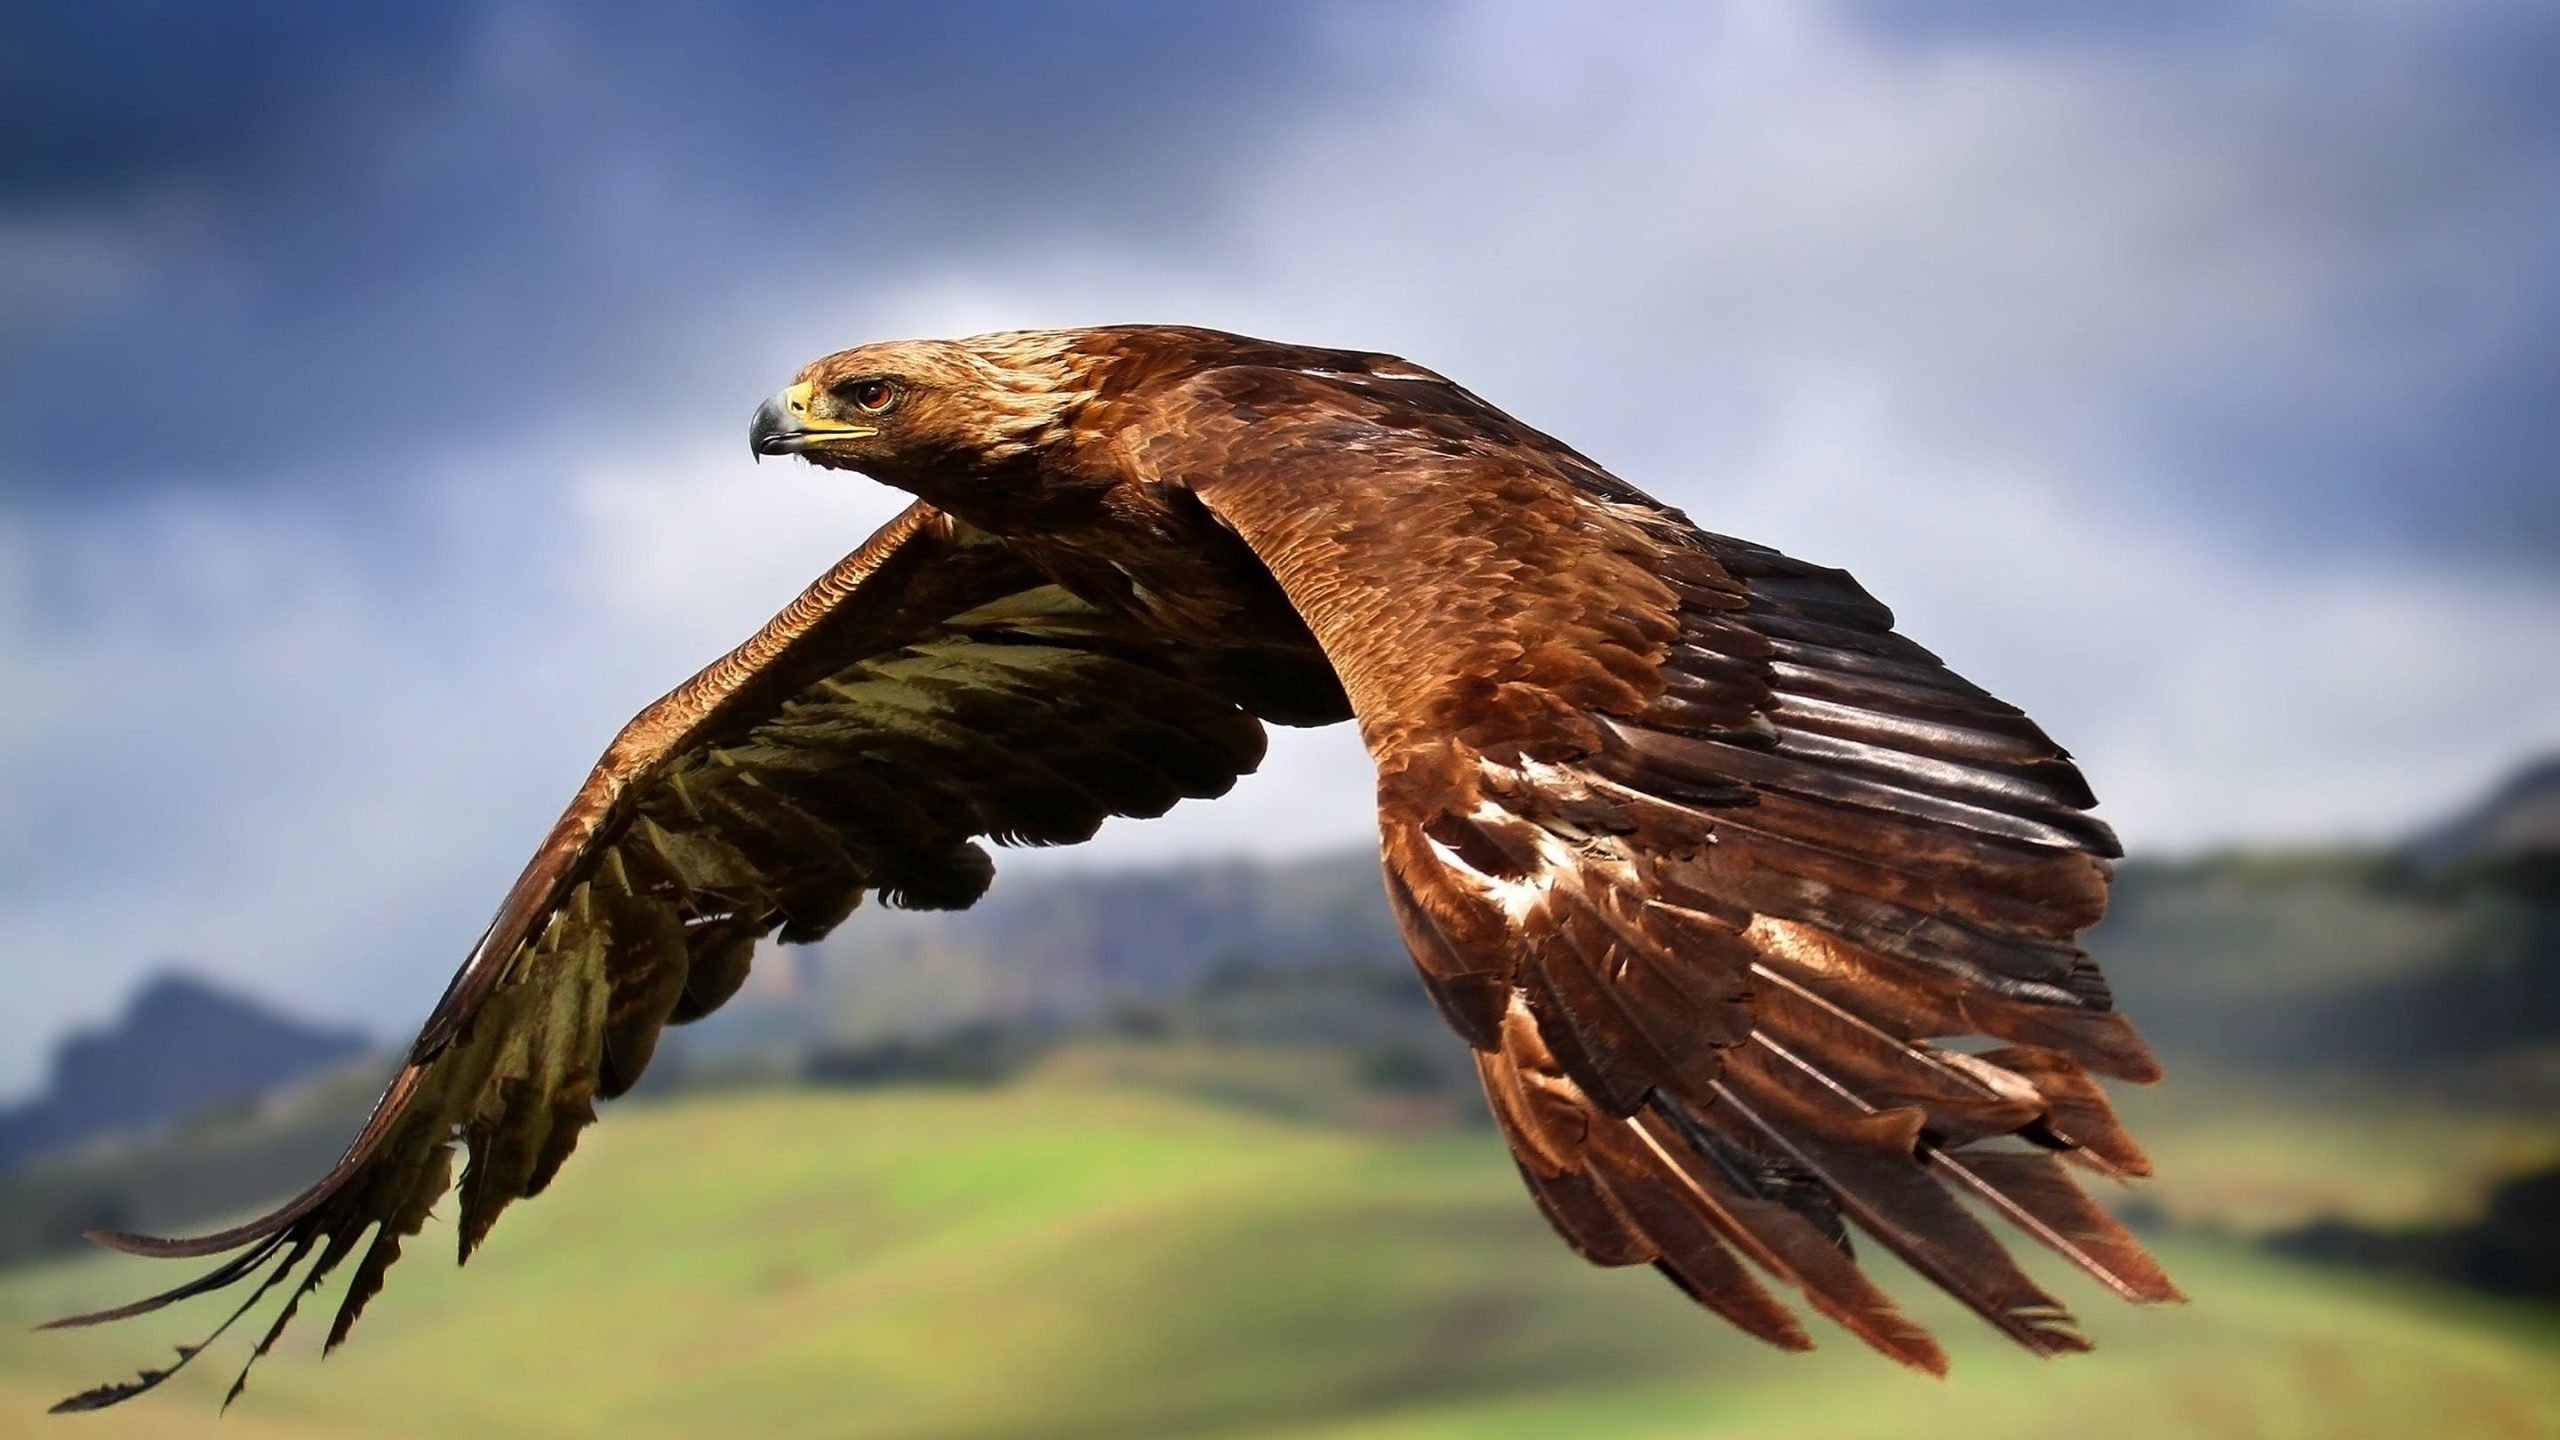 Golden Eagle Flying Wallpaper for Desktop 2560x1440